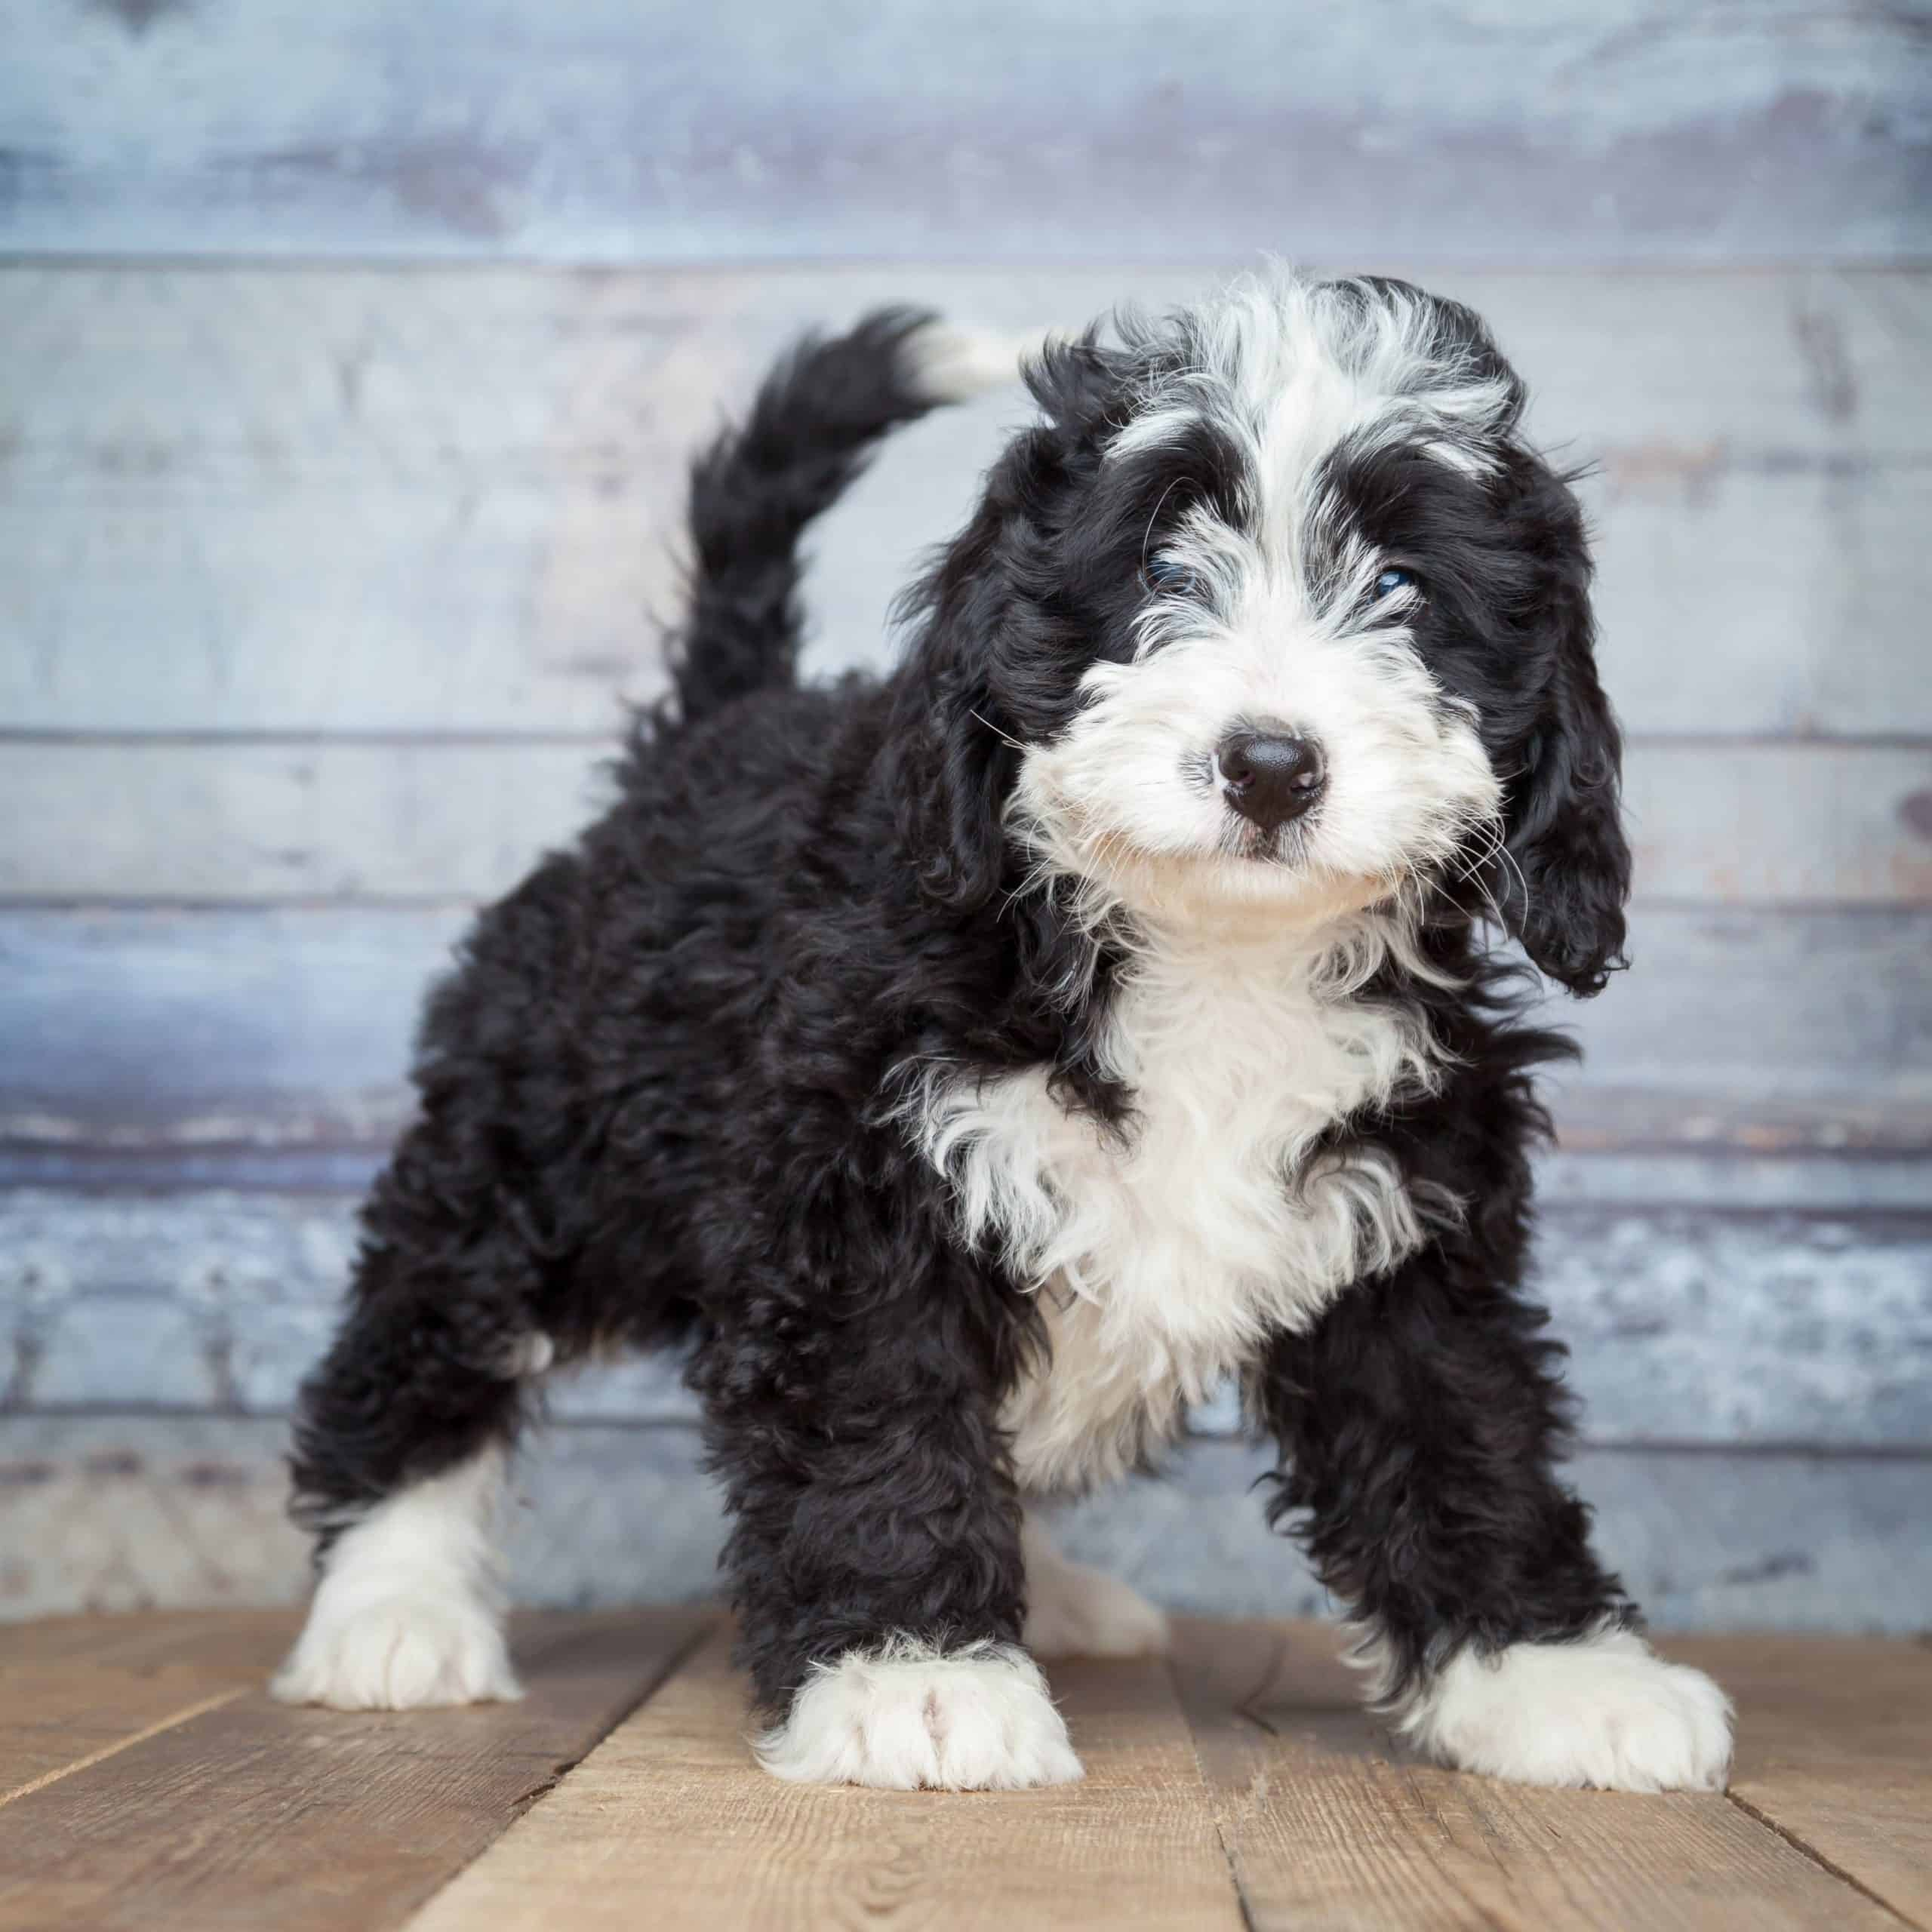 Bernedoodle puppy. Bernedoodles get their personality traits from the parent breeds.